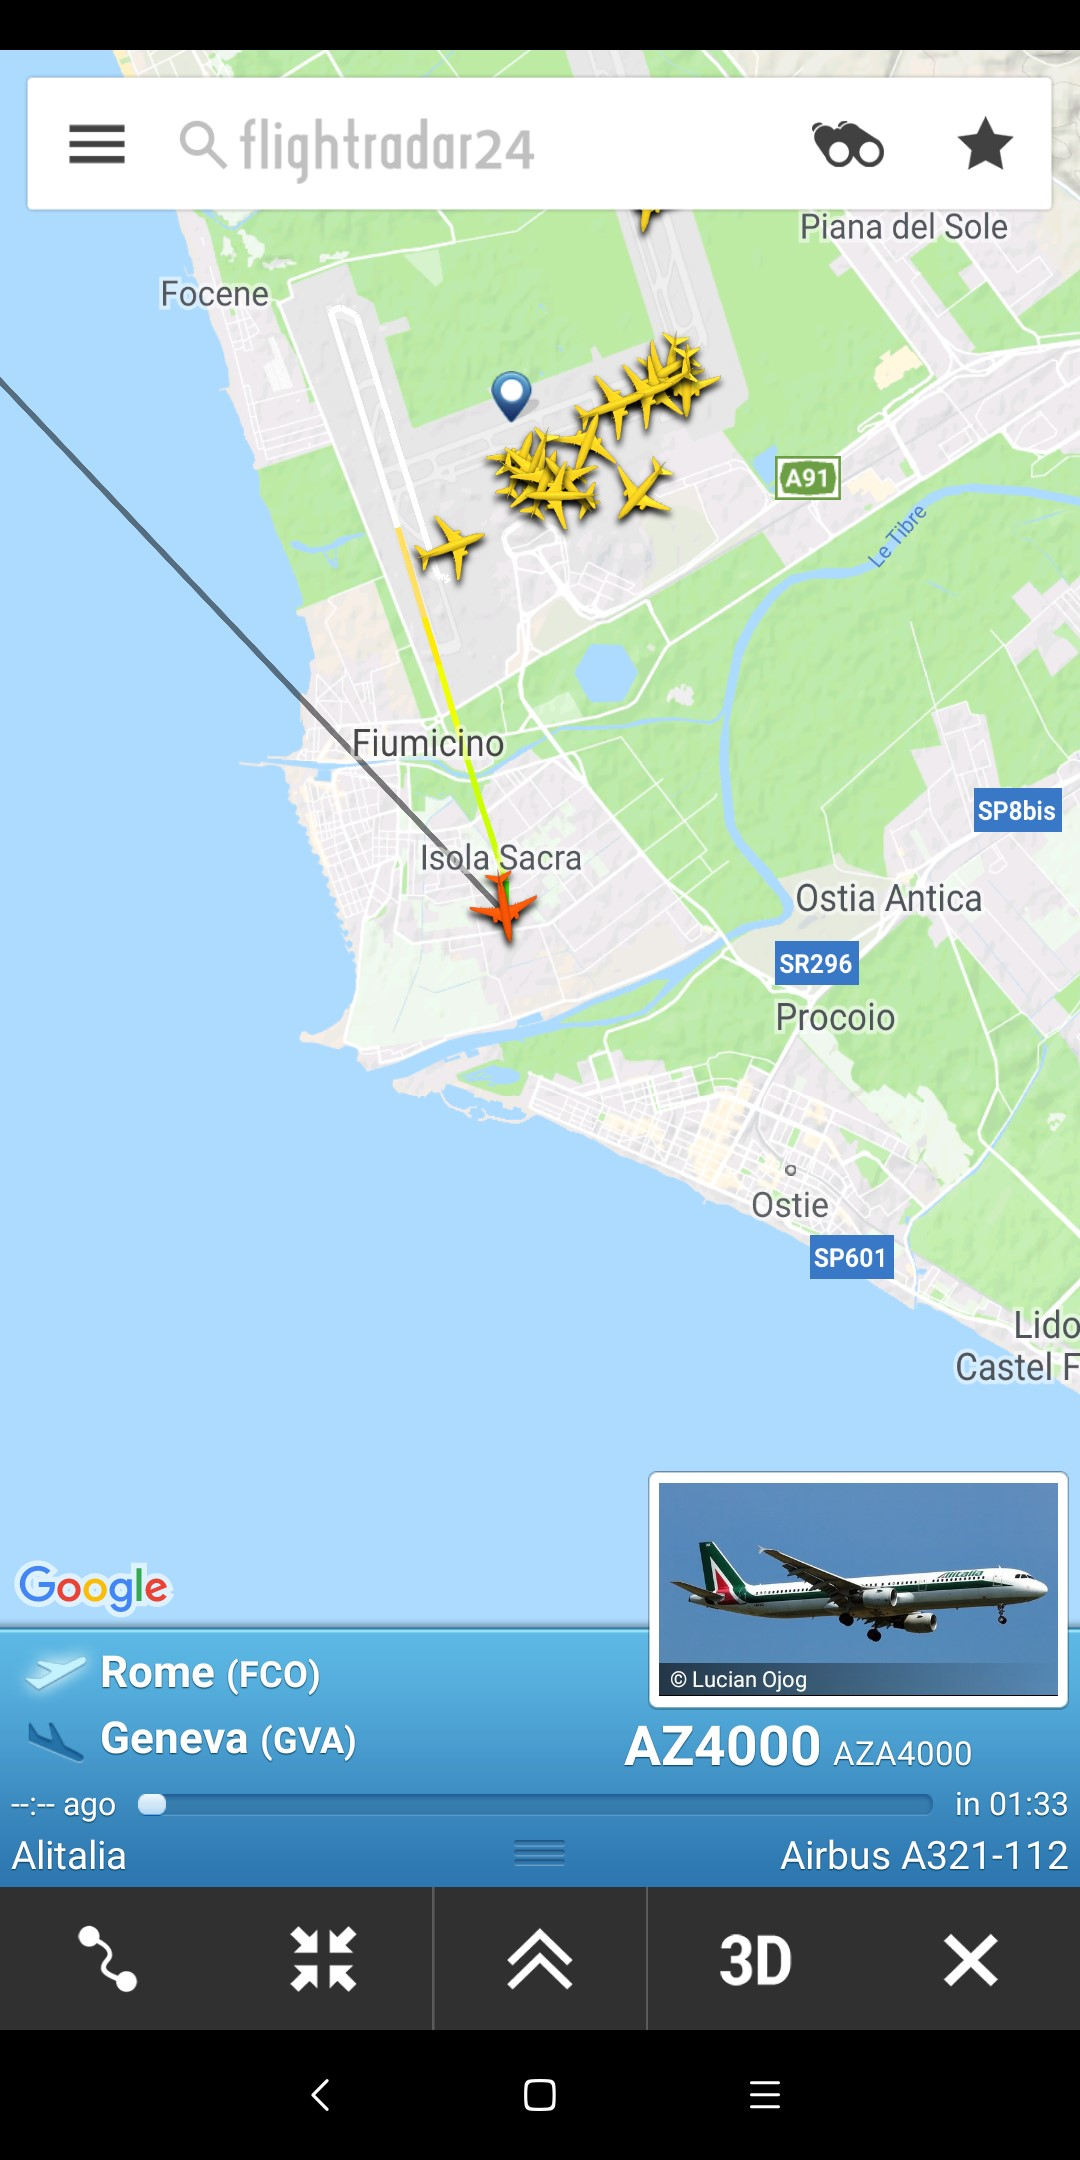 Capture d'écran issue de flightradar24.